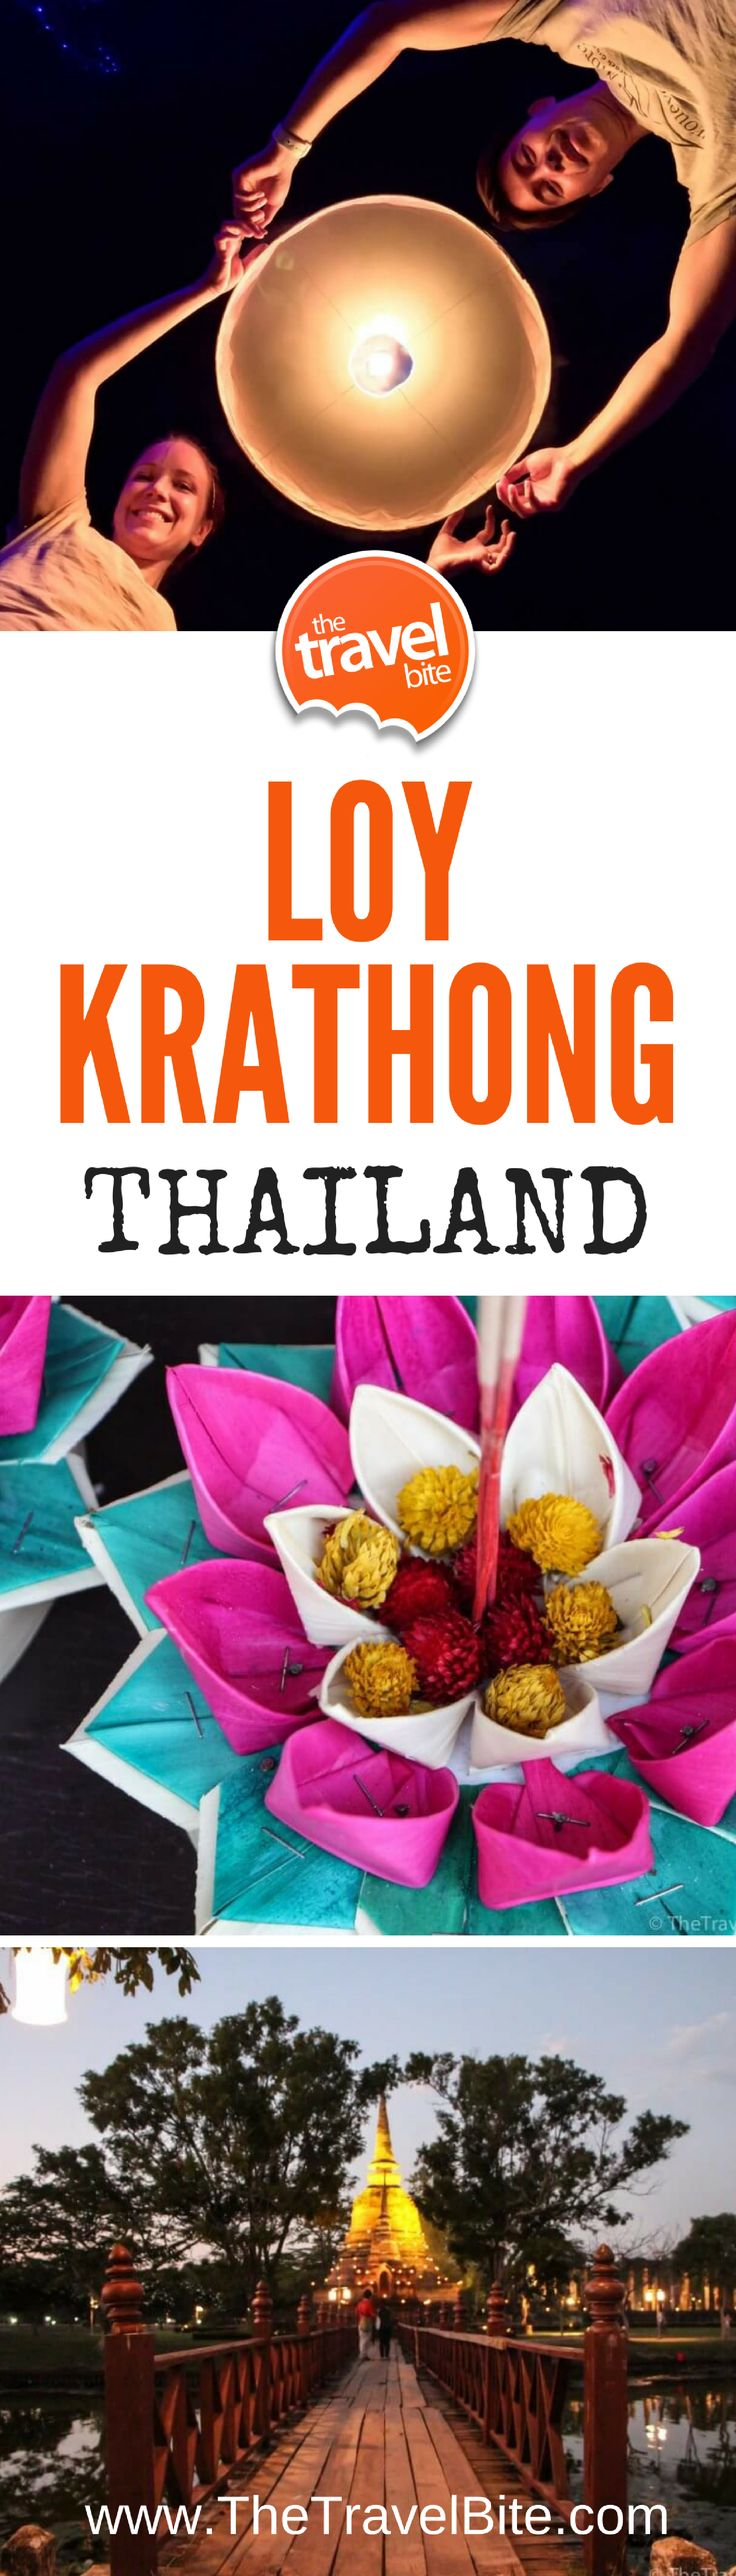 Celebrating Loy Krathong in Sukhothai, Thailand!Autumn is a great time of year to visit Thailand as the tropical weather is a bit more mild and there's a sense of magic in the air with two local festivals:  Loy Krathong and Yi Peng.